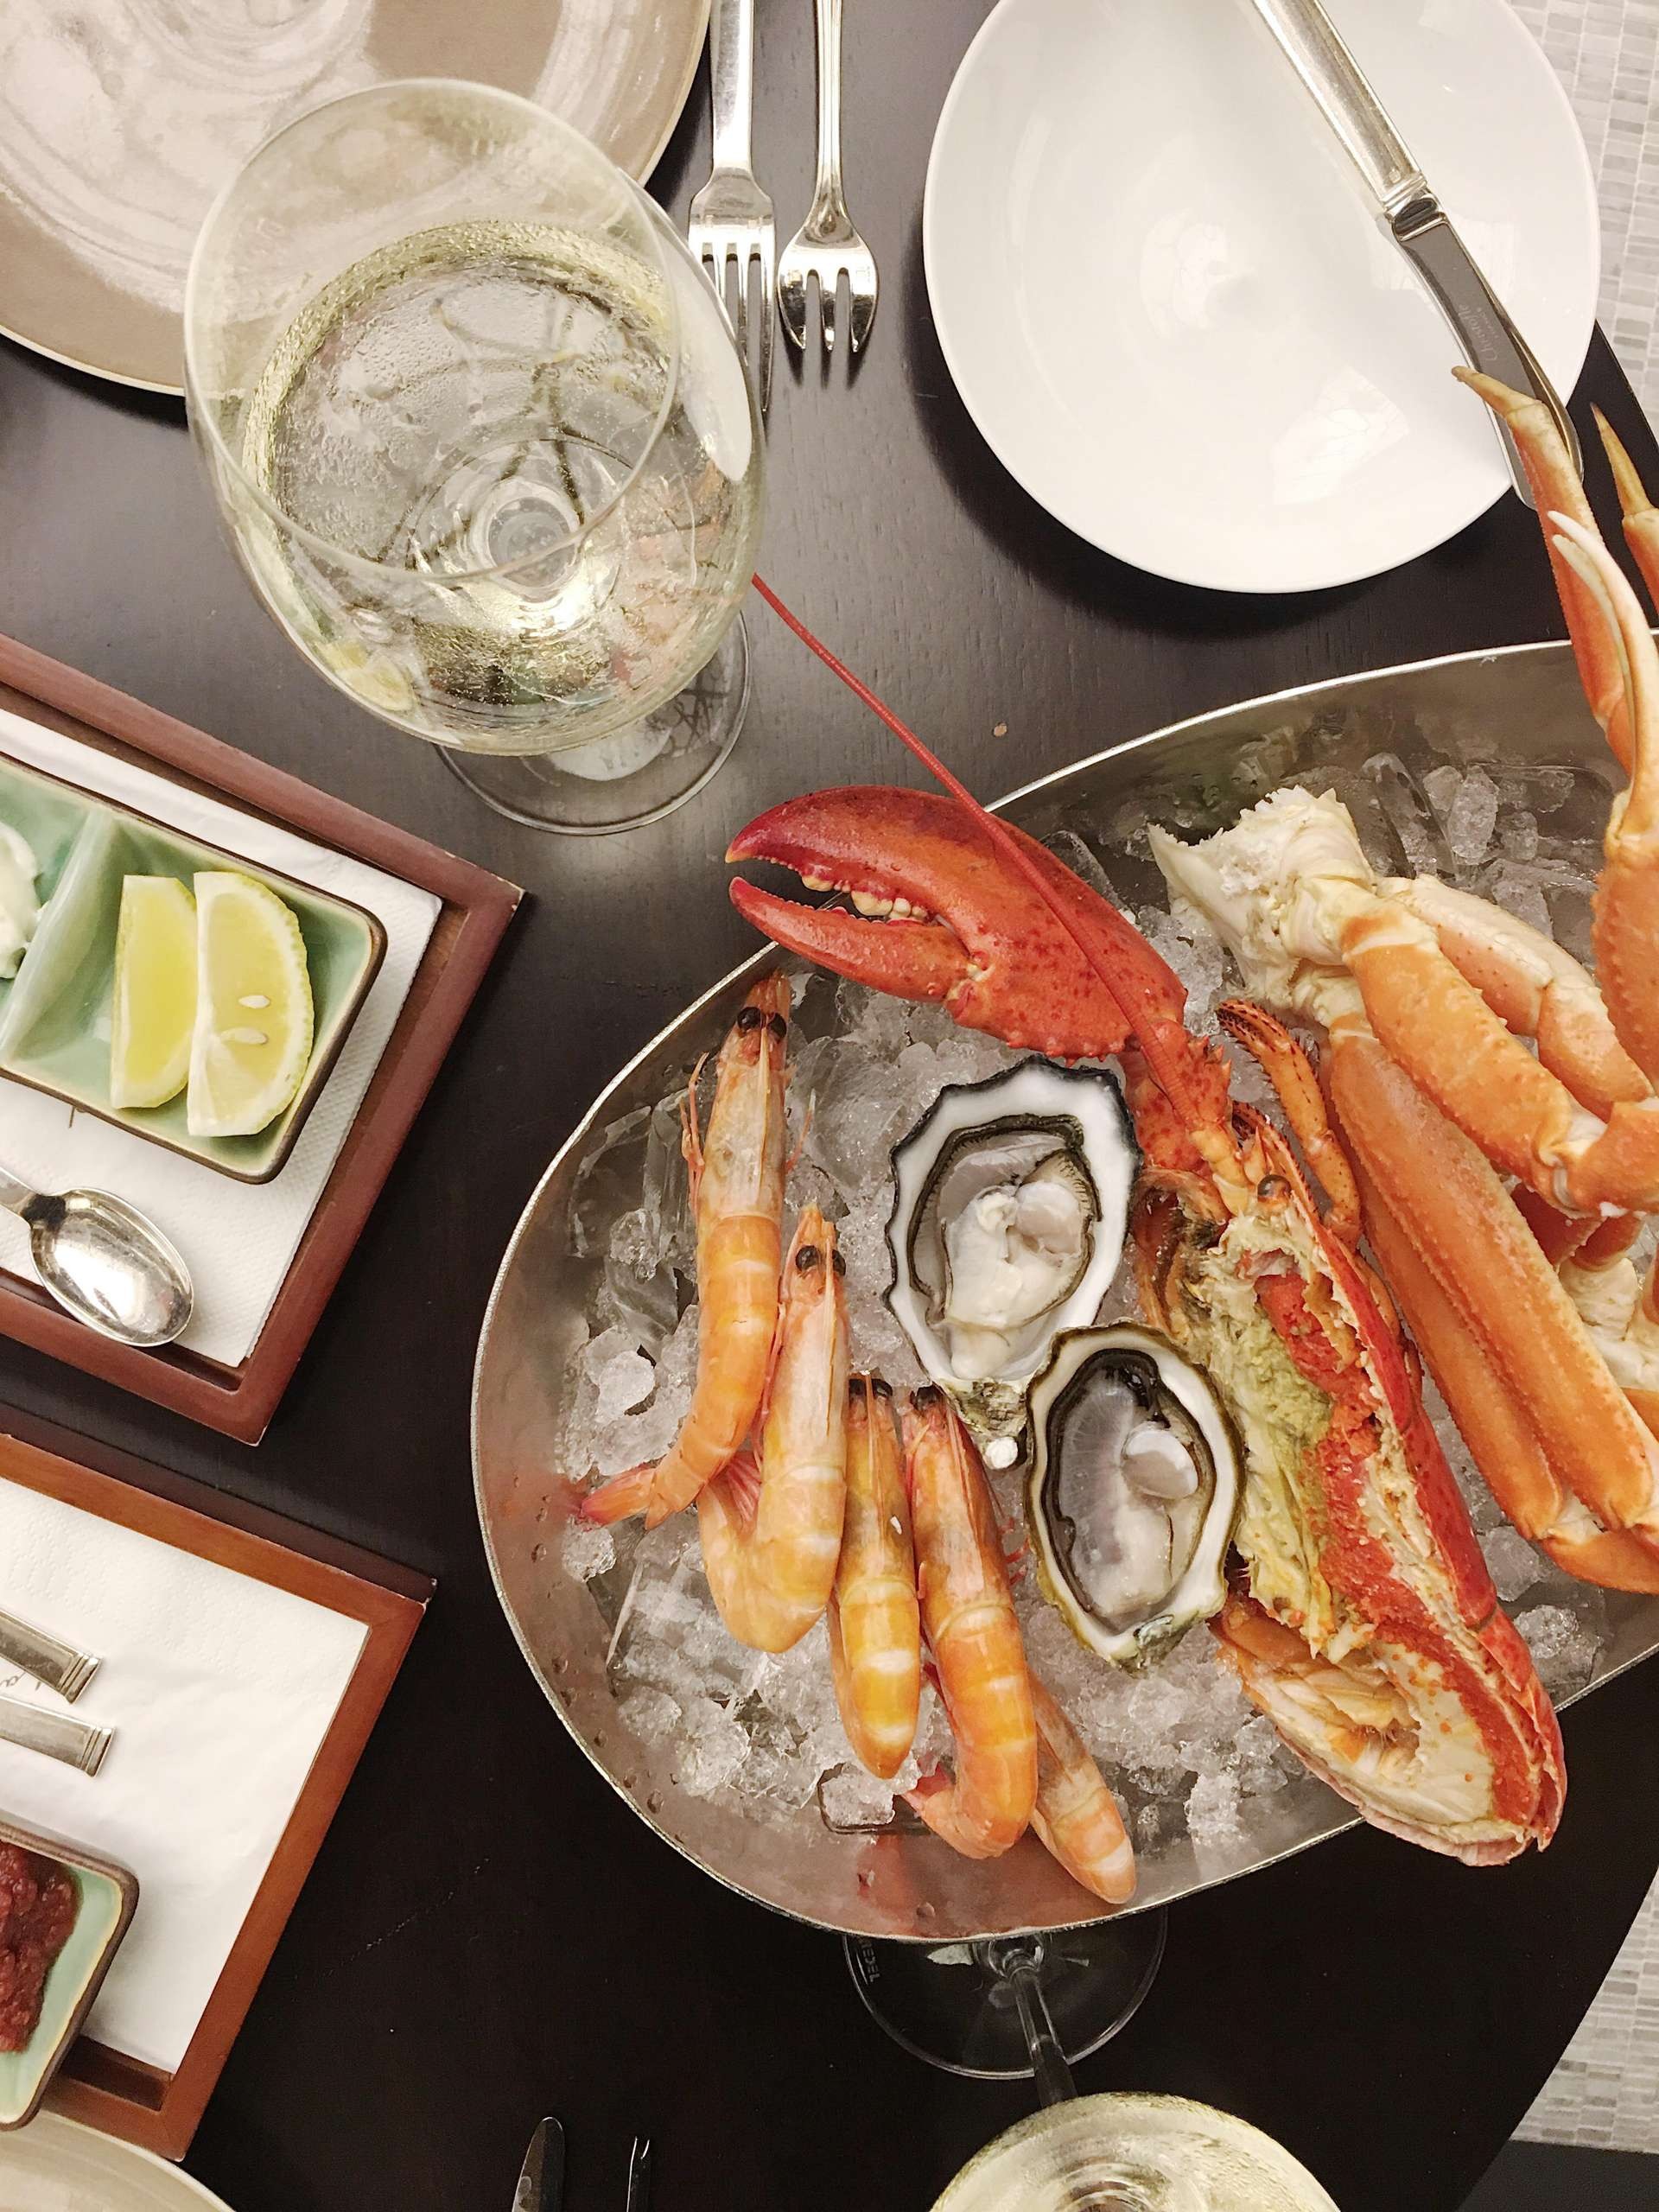 Seafood brunch with white wine at st regis macao